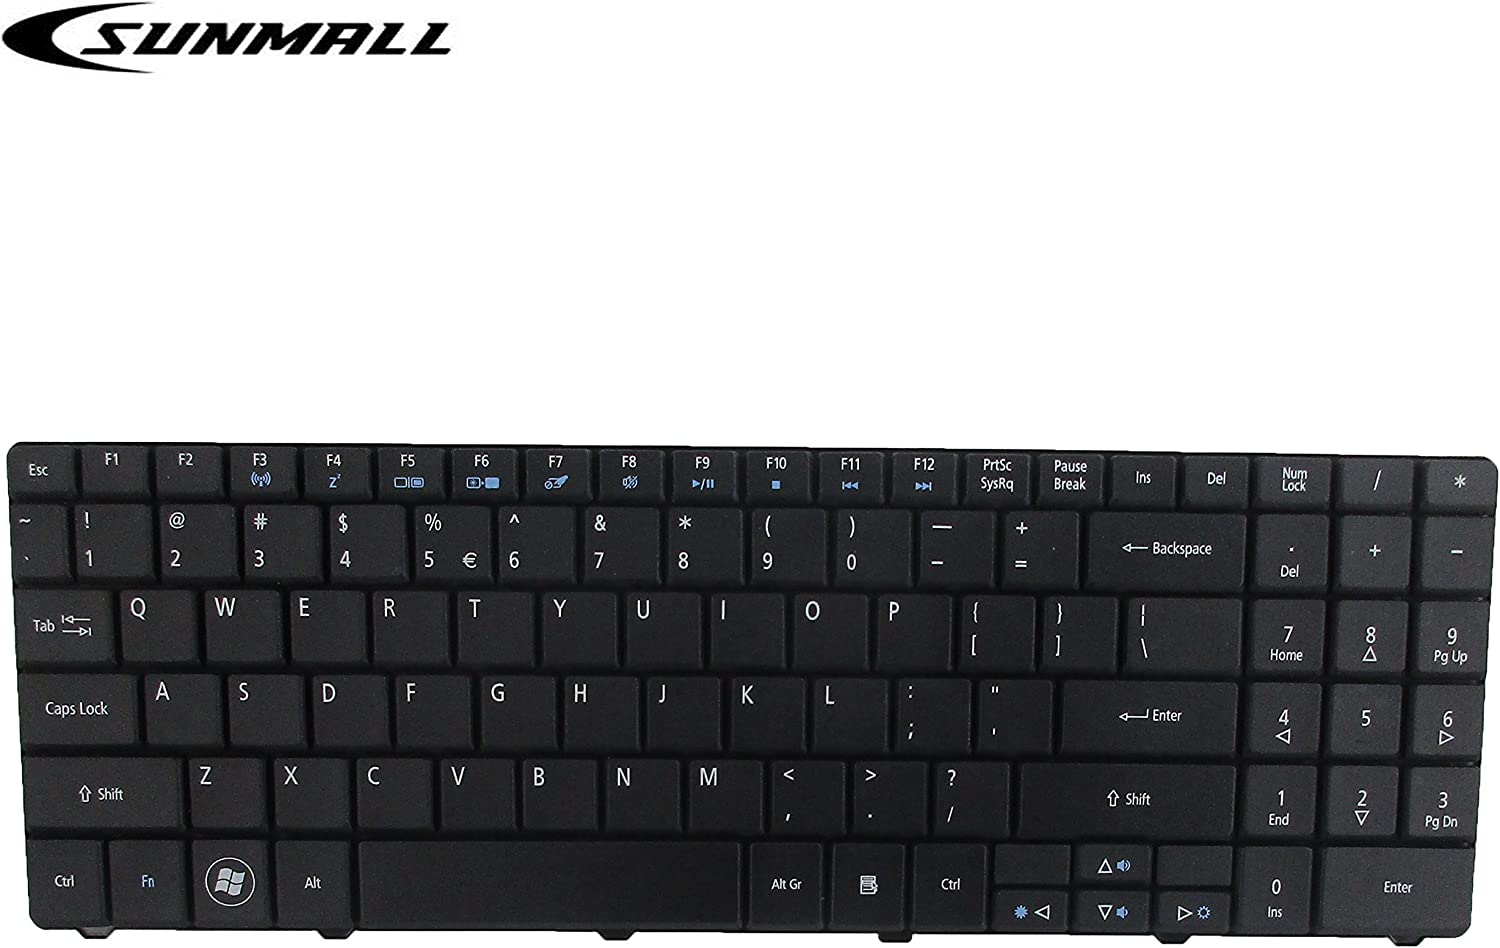 SUNMALL Keyboard Replacement for ACER Aspire 5516 5517 5532 7715 7715Z 5241 5541 5541G 5732Z 5334 5734 Emachines E525 E625 E627 E725 E527 E727 G420 G430 G525 Series Black US Layout